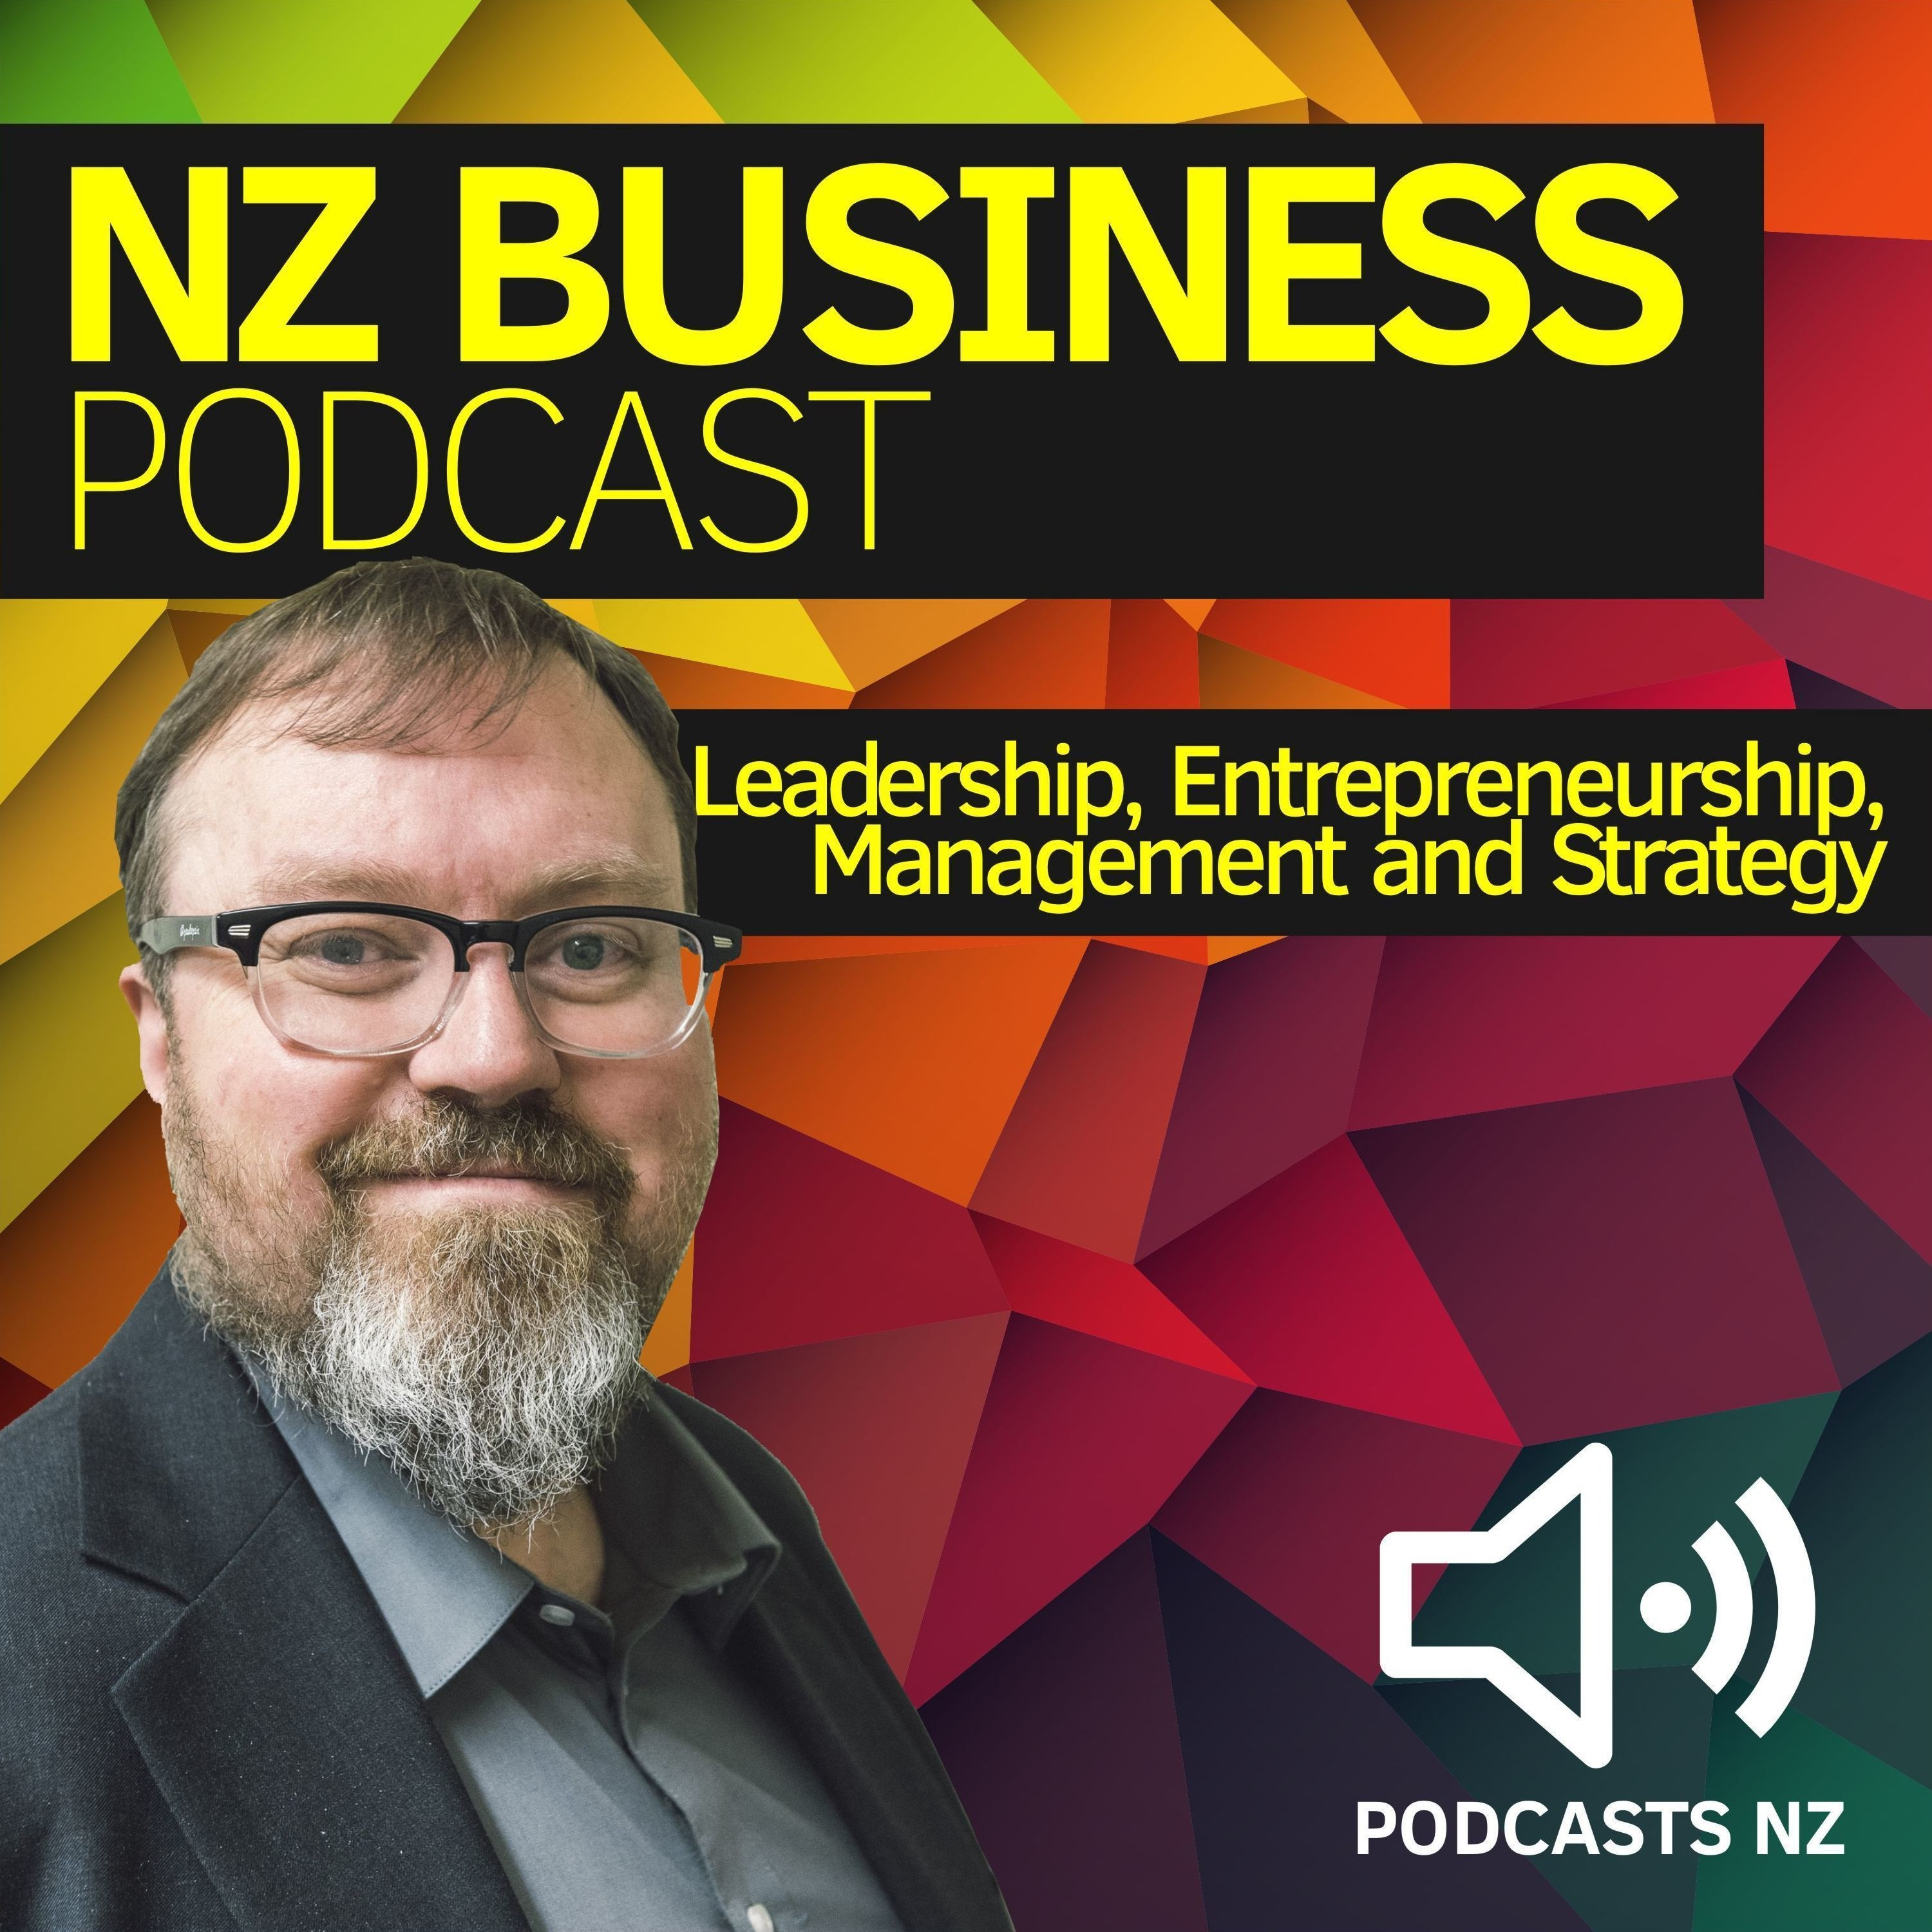 NZ Business Podcast - with Paul Spain